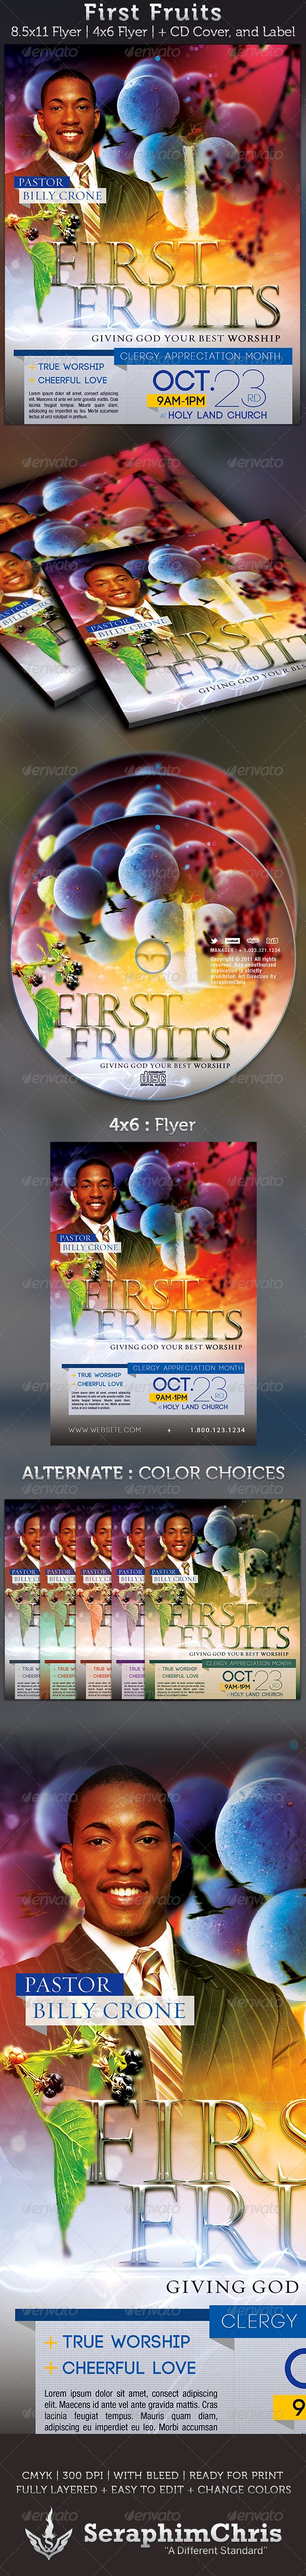 First Fruits: Church Flyer and CD Cover Template -$7.00